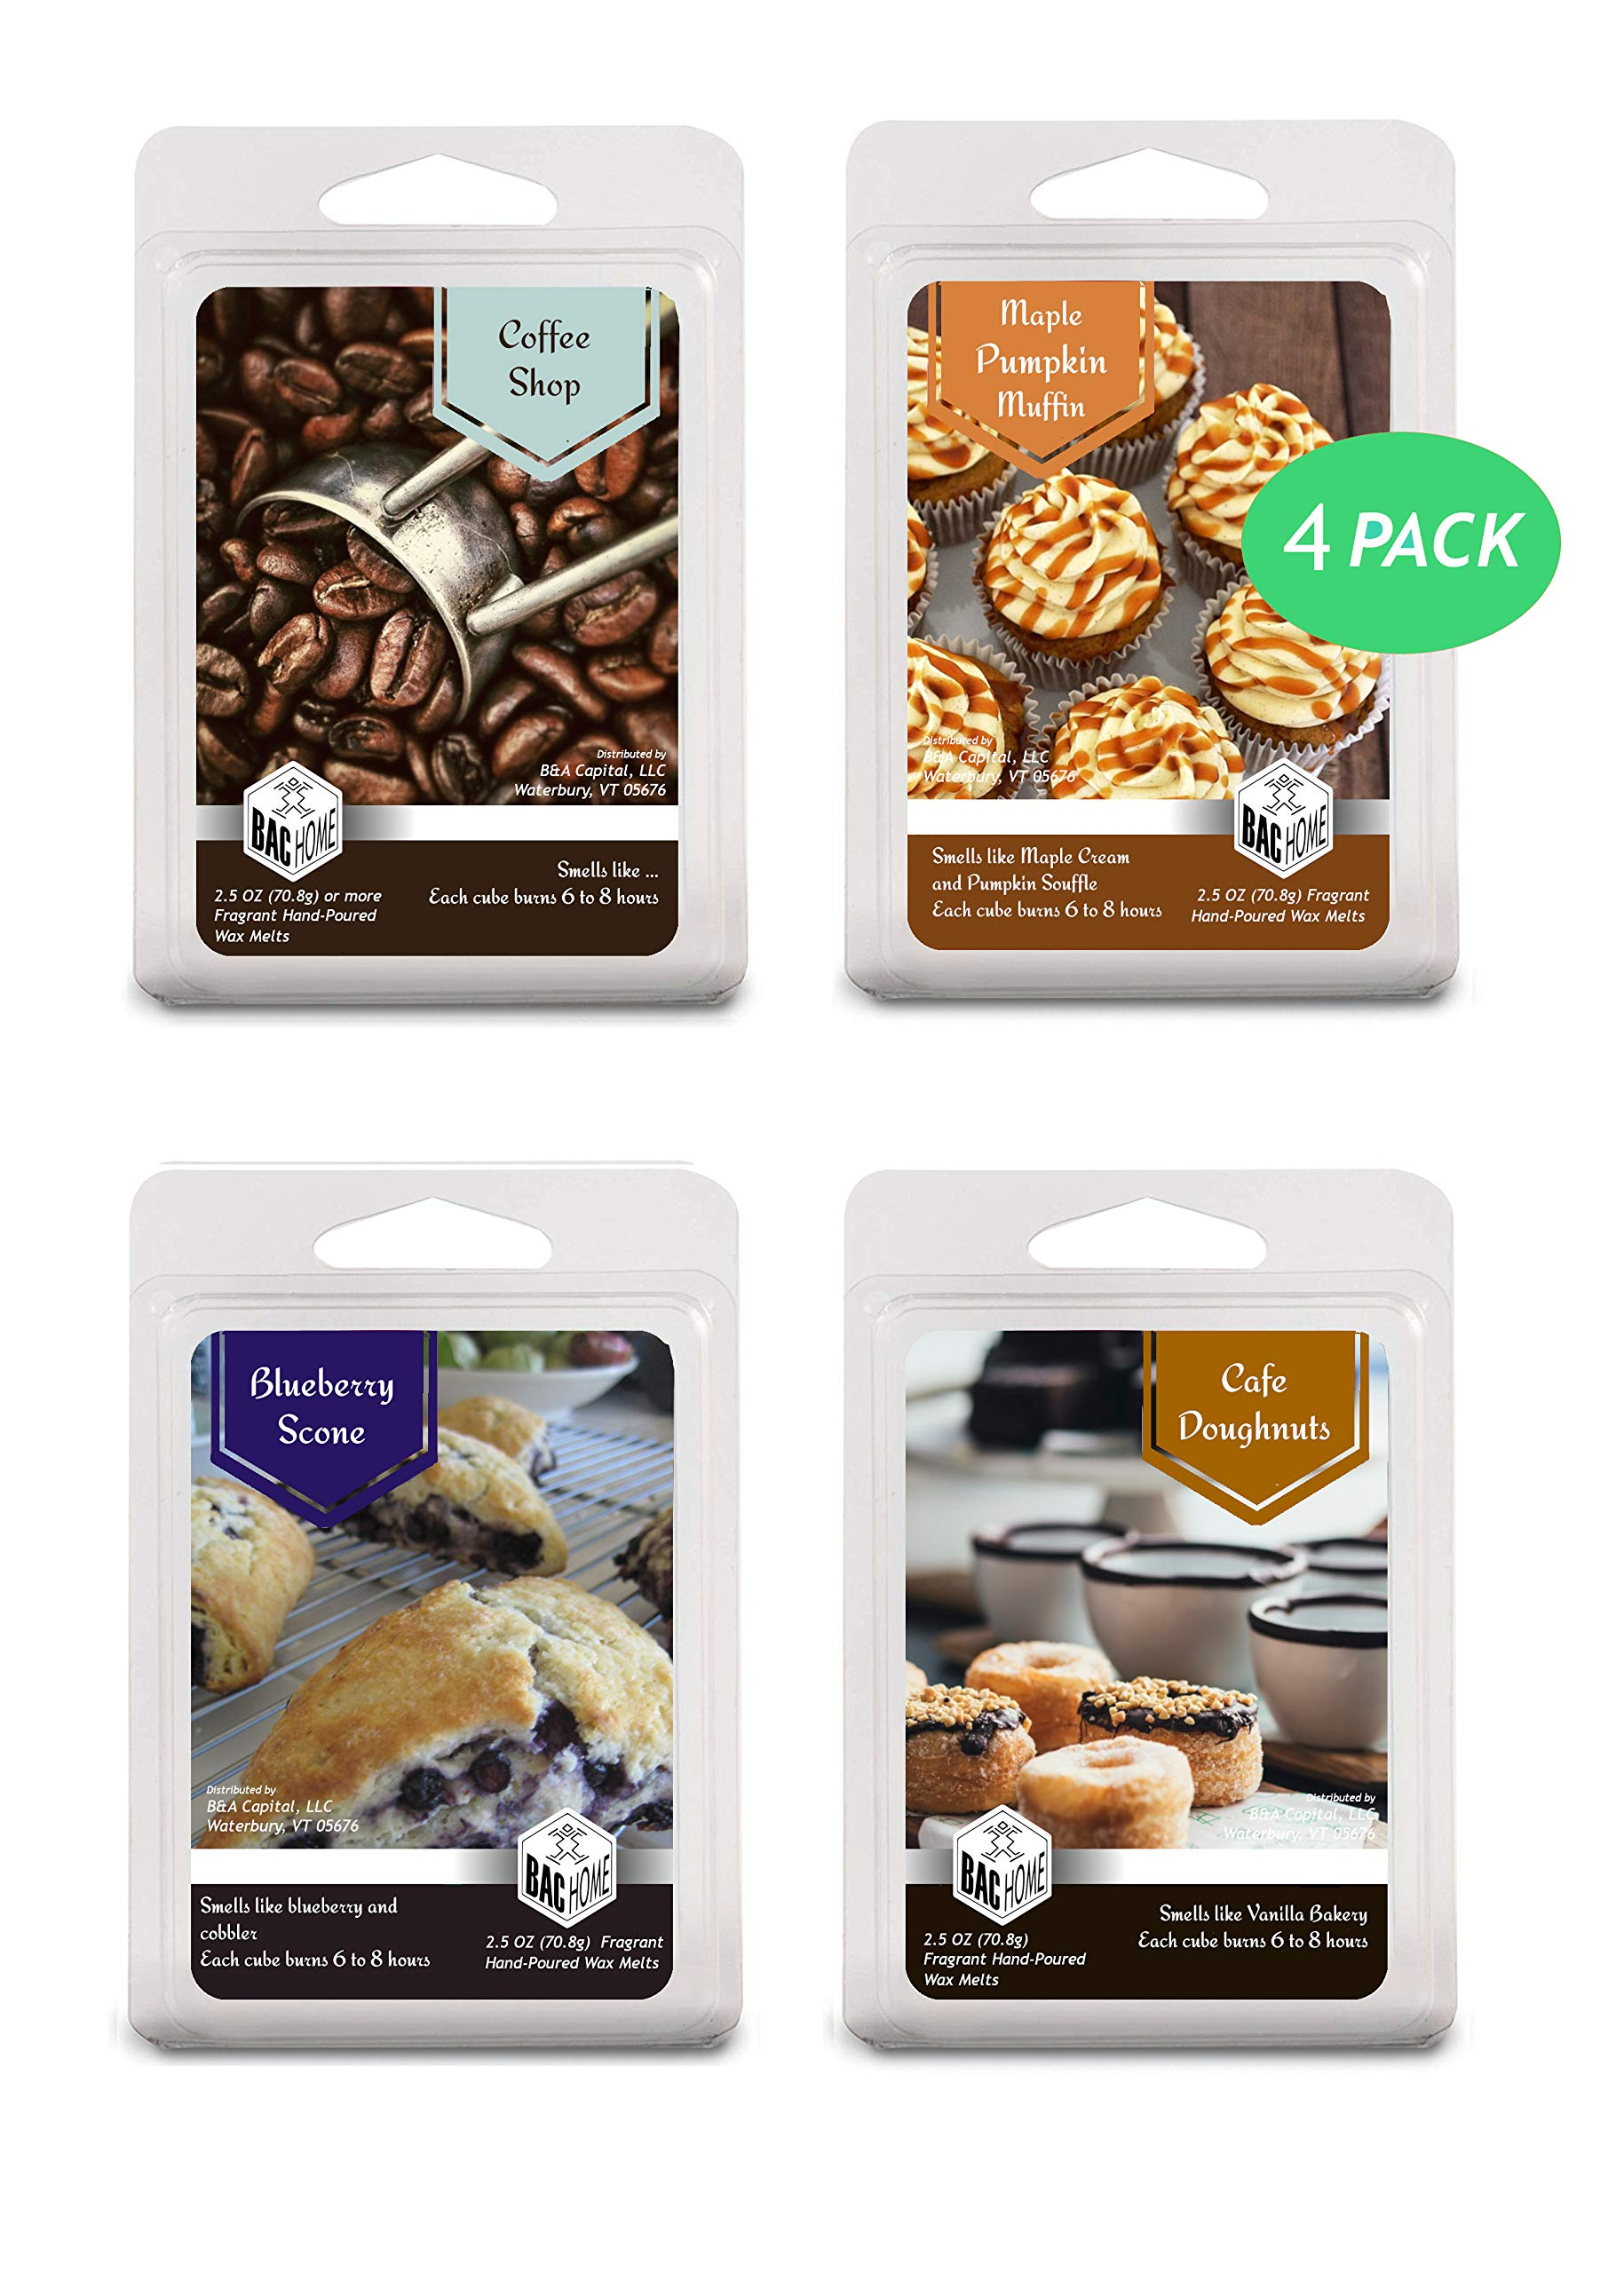 4 Pack - Cafe Bakery Soy Blend Scented Wax Melts Wax Cubes, 10.0 oz, [24 Cubes] with Coffee Shop, Blue Berry Scone, Maple Pumpkin Muffin and Cafe Doughnuts by BAC Home (Image #1)